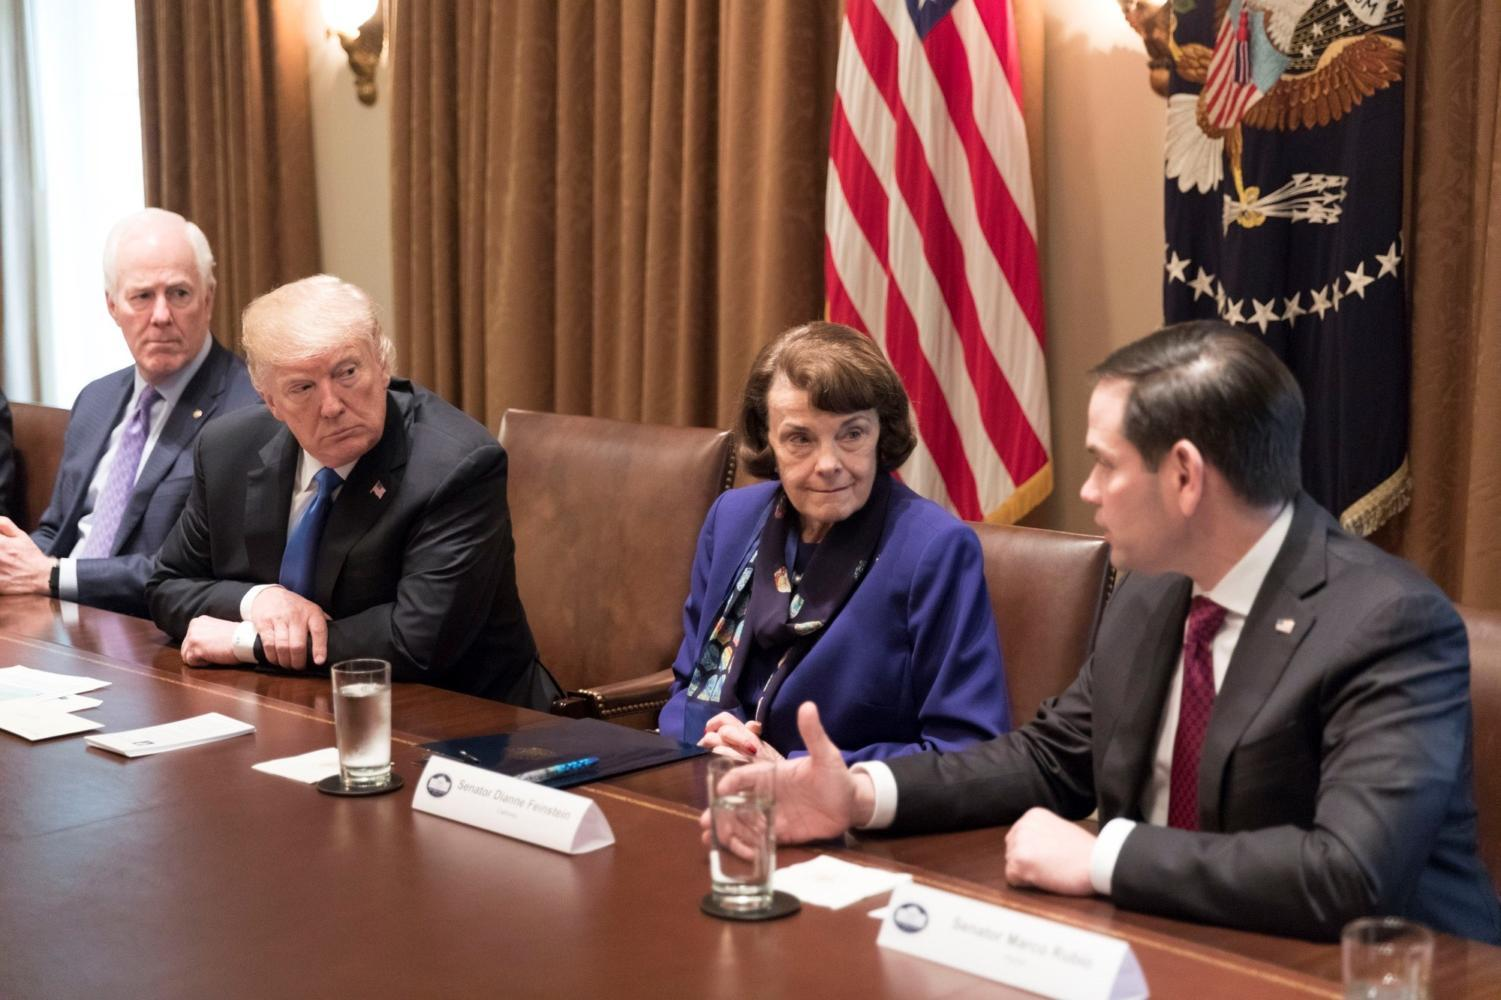 Senator Diane Feinstein meets with Donald Trump to discuss gun control, one of the issues she is most outspoken about. While she supports items such as gun control, she often is more centrist than some of her Democratic colleagues.